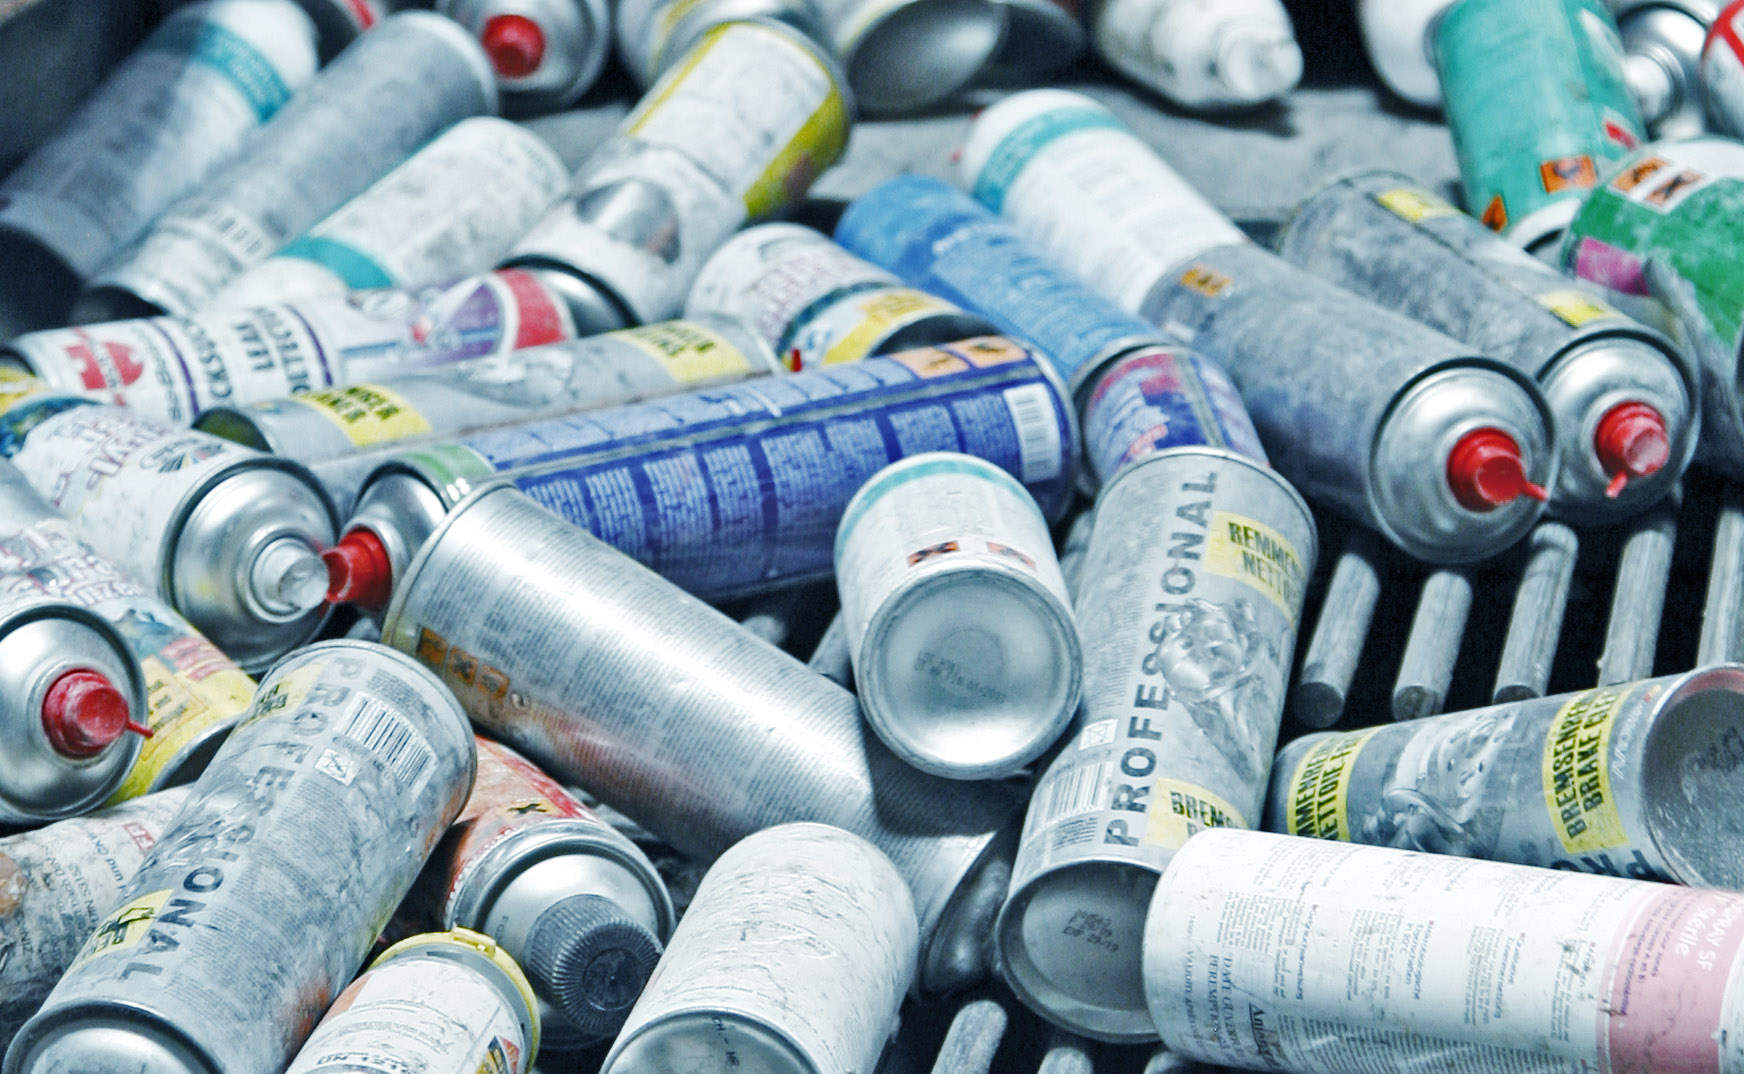 recycling-input-metals-aerosol-cans